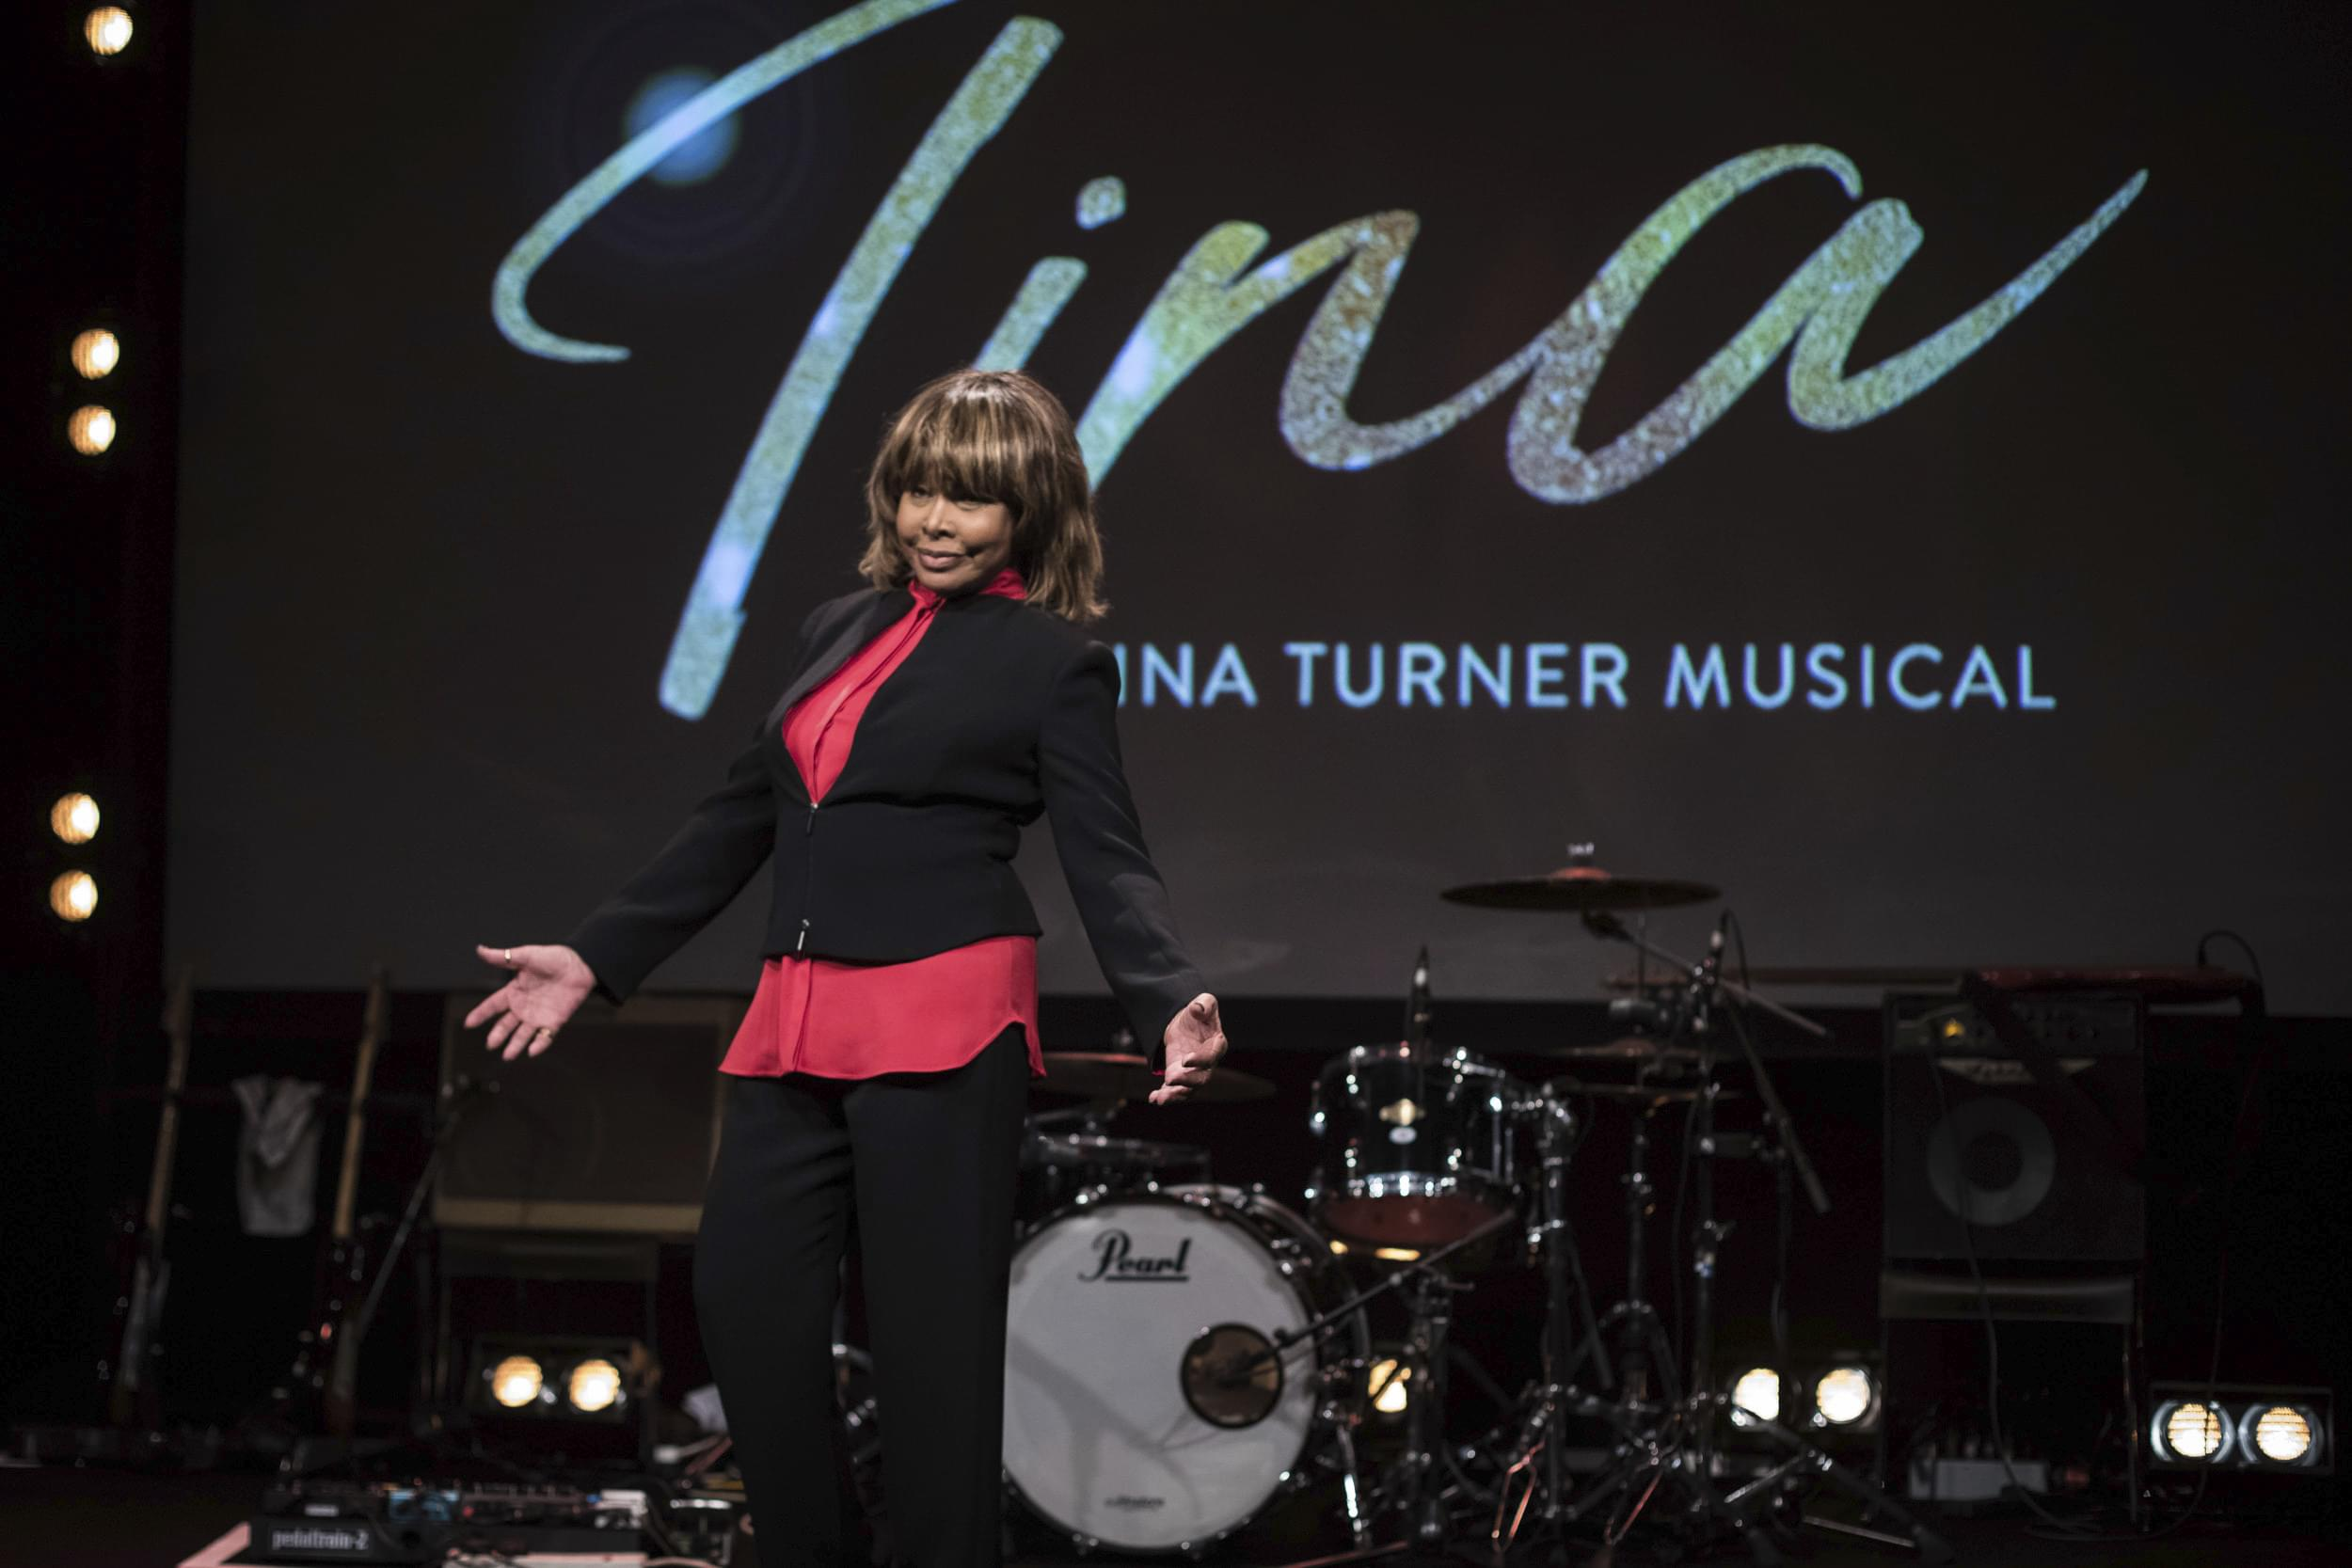 Tina Turner Musical coming to Broadway | Kevin Machado |